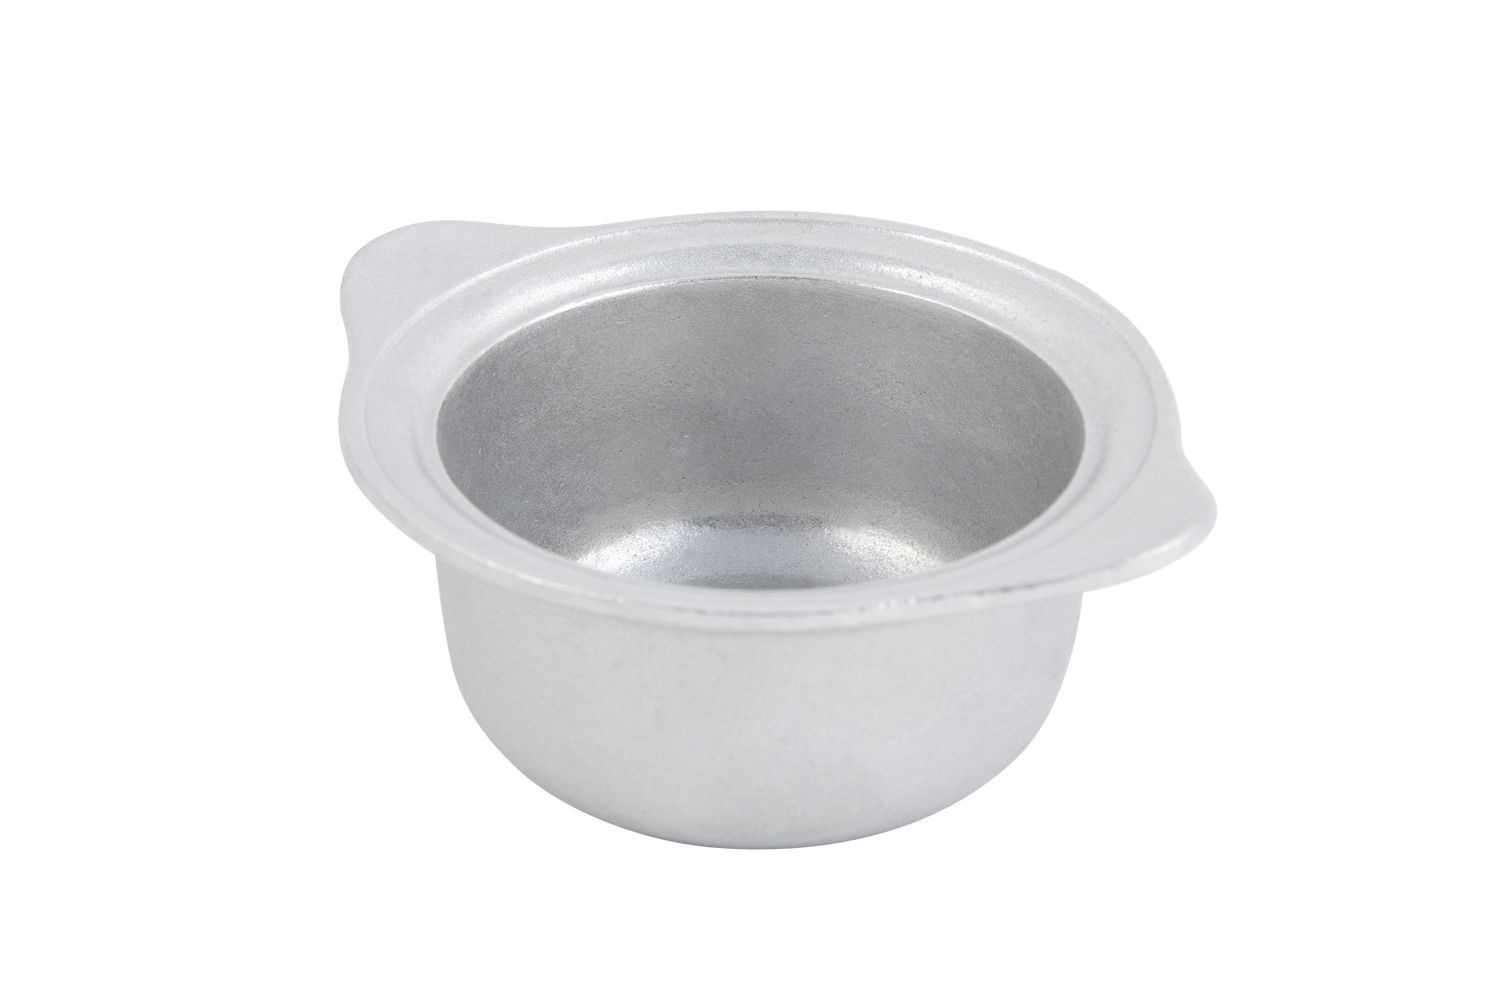 Bon Chef 3029P Soup Bowl with Flanged Handle, Pewter Glo 8 oz., Set of 12